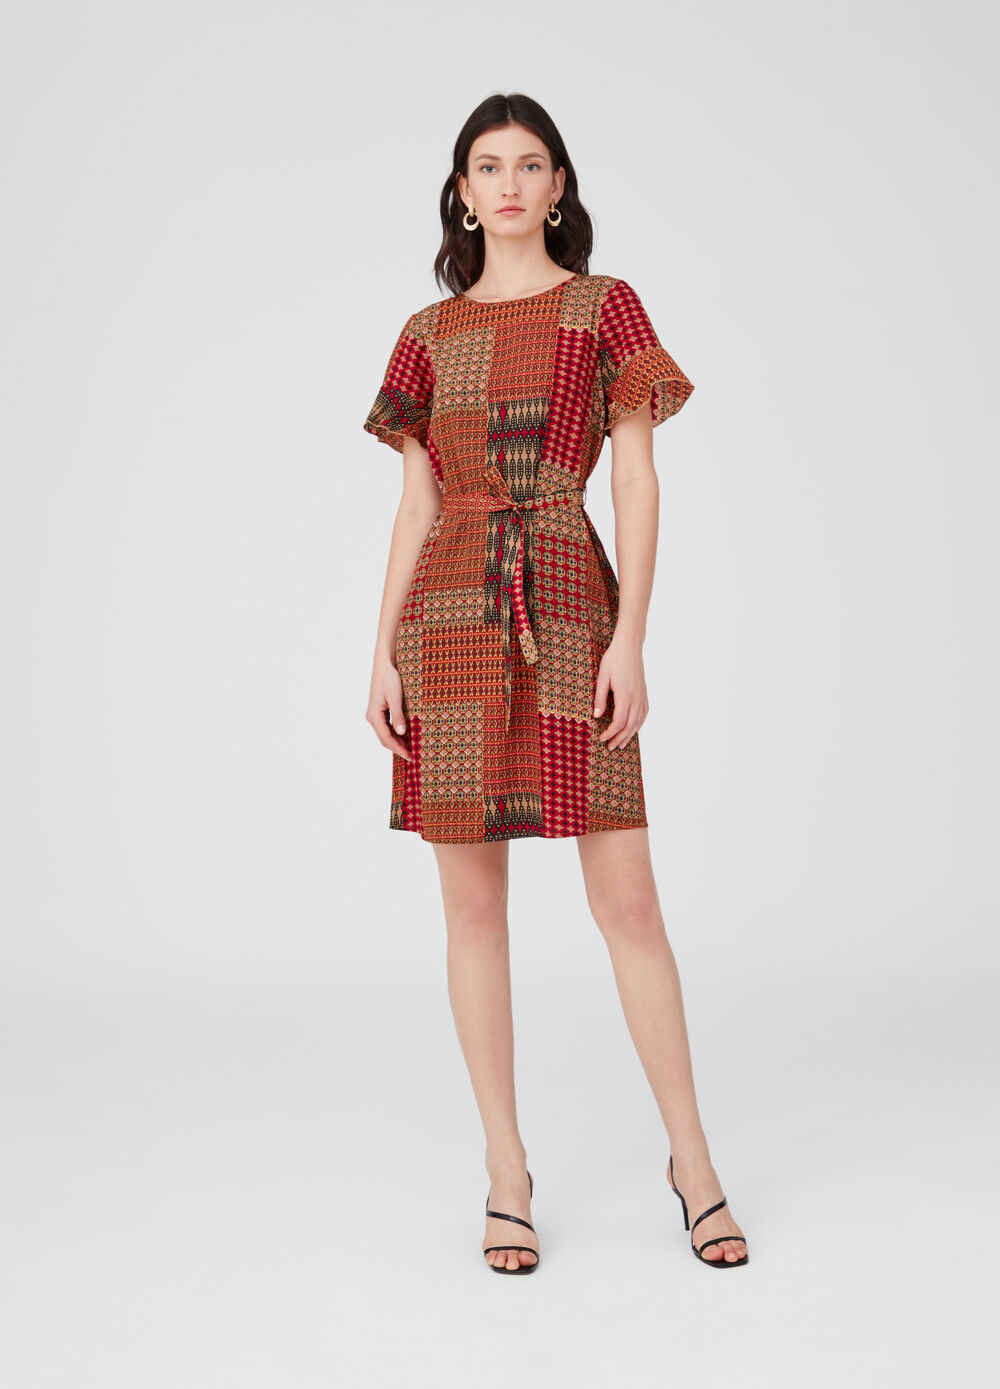 Dress with wide sleeves and patterned frills